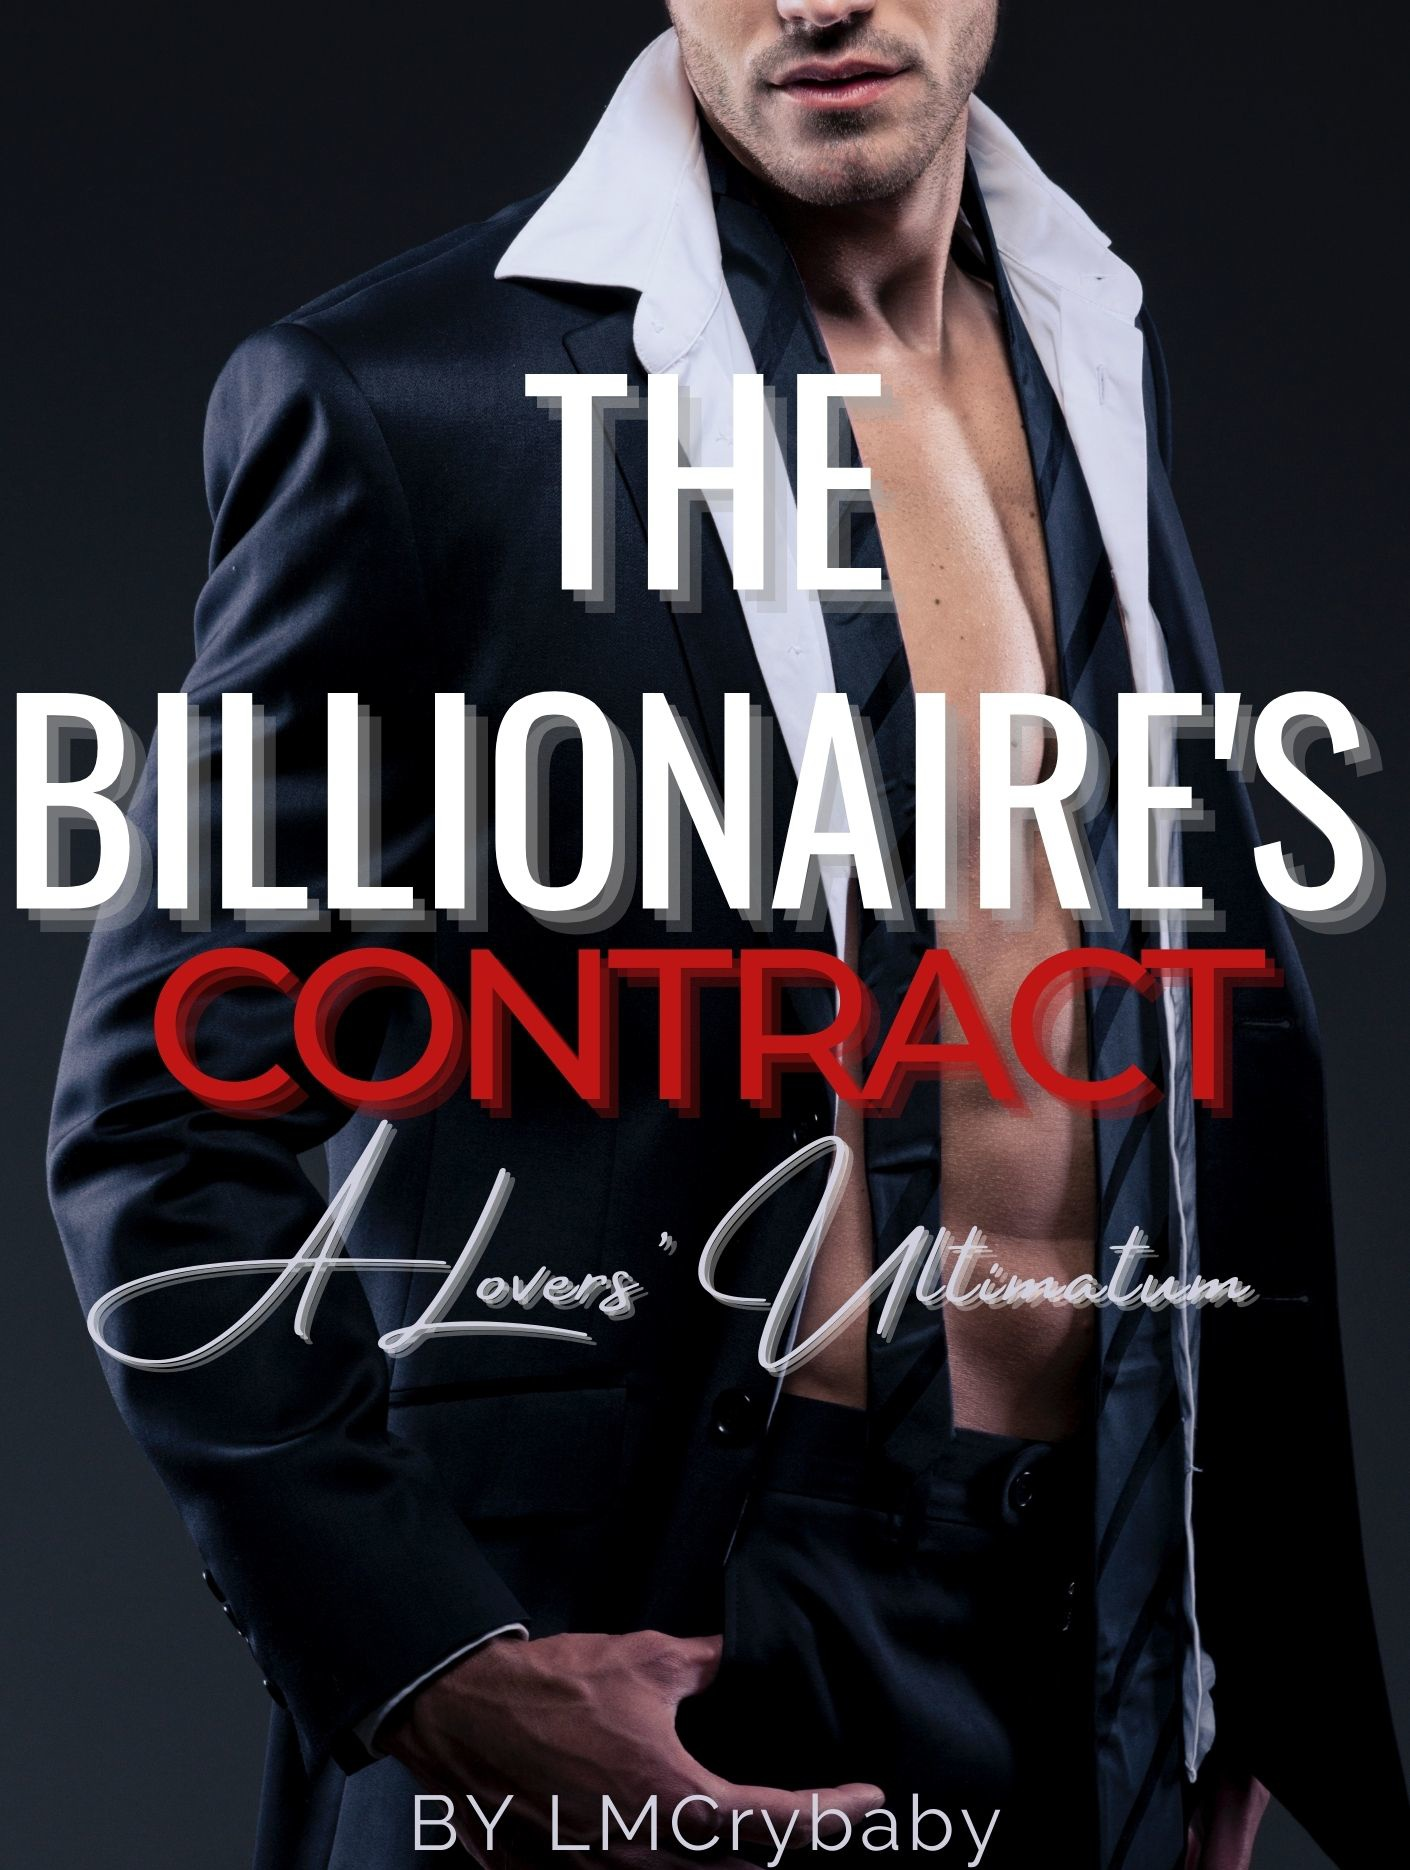 The Billionaire's Contract: A Lovers' Ultimatum